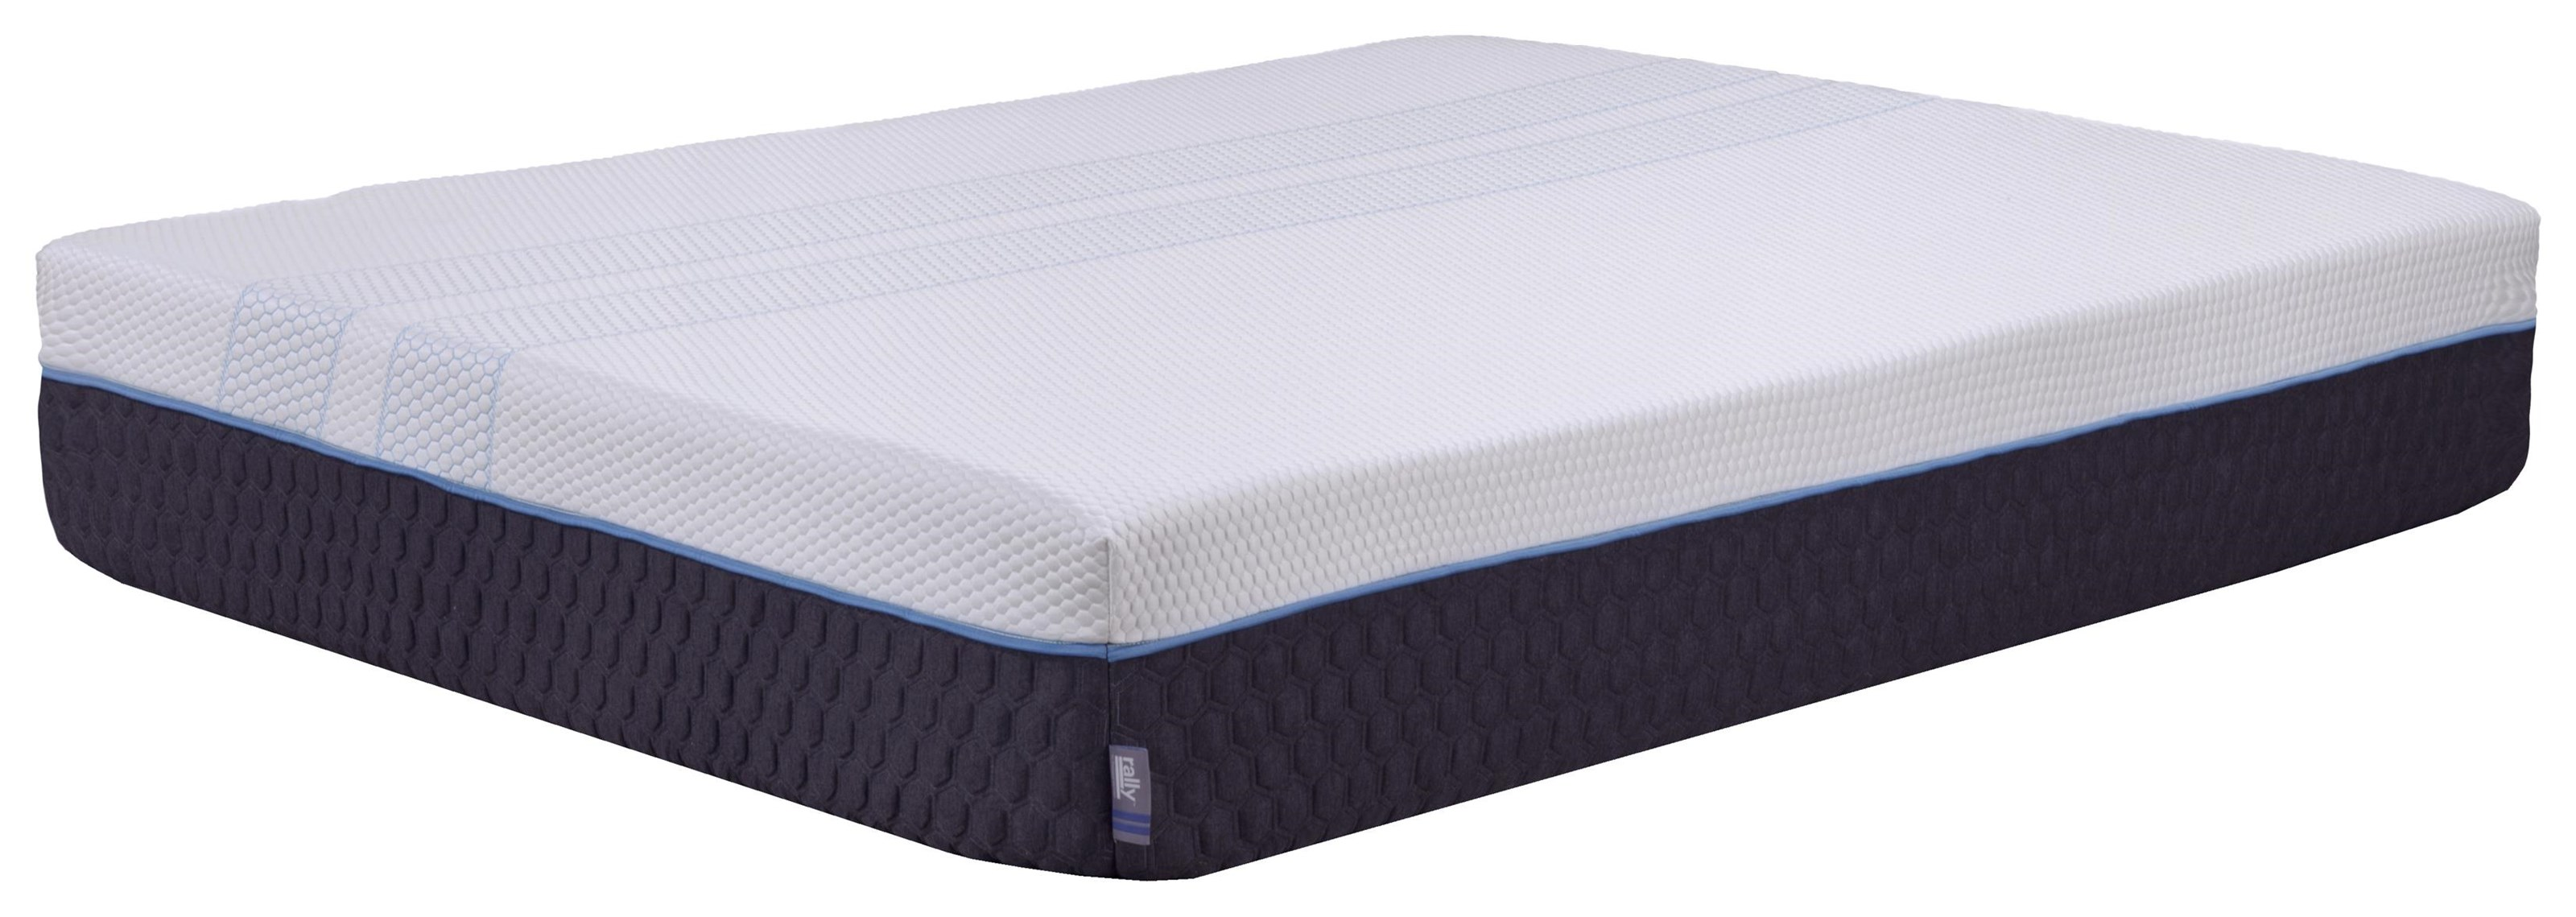 Rally Hybrid Cooling Firm King Firm Hybrid Cooling Mattress in a Box by Diamond Mattress at Beck's Furniture